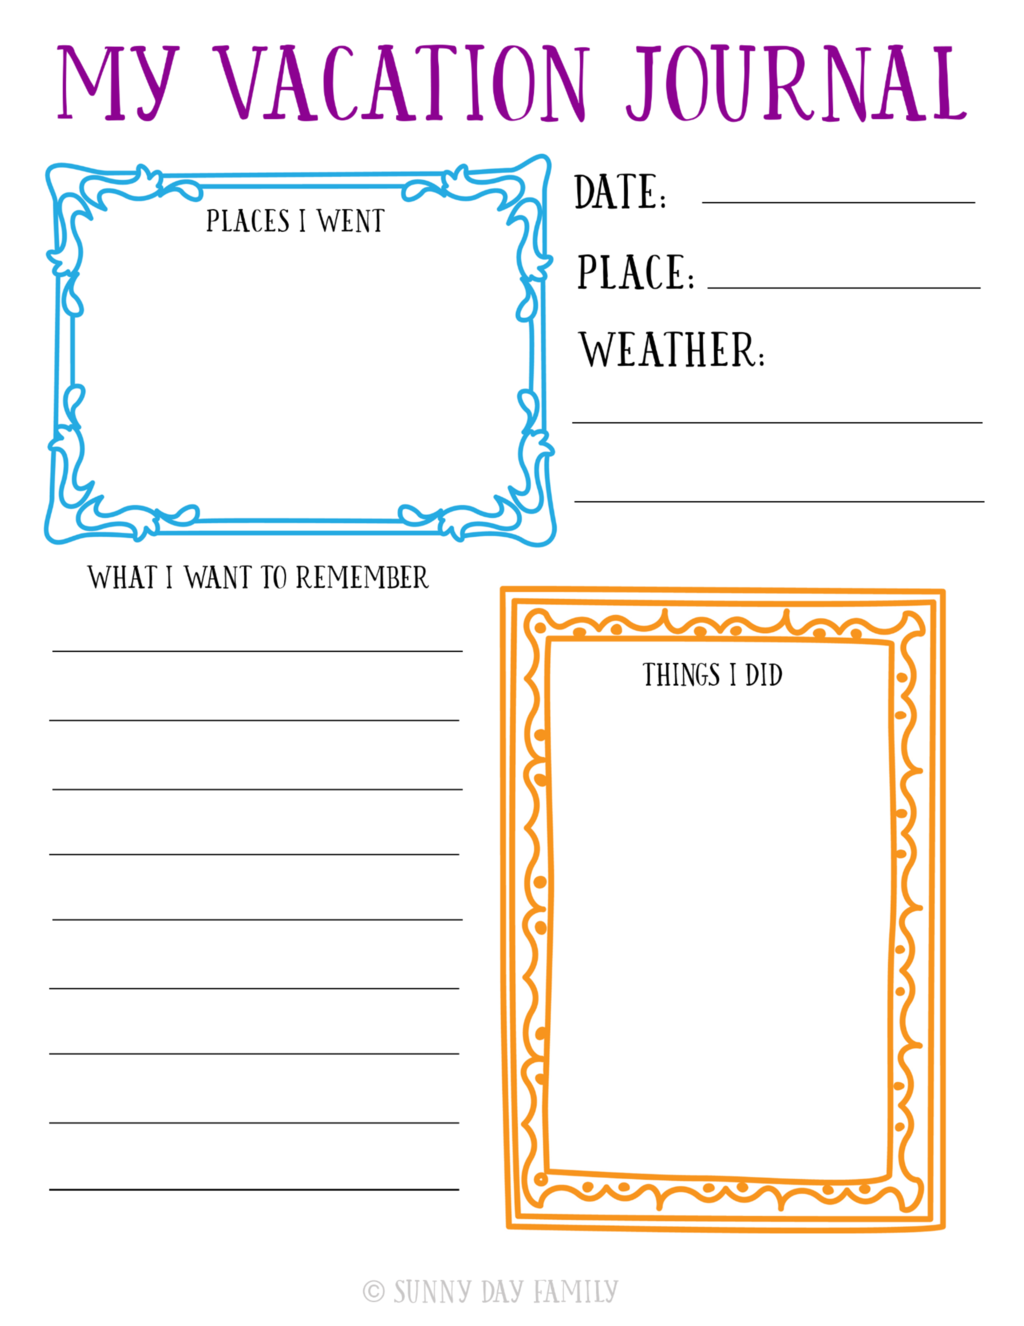 Free Printable Travel Journal For Your Family Vacation